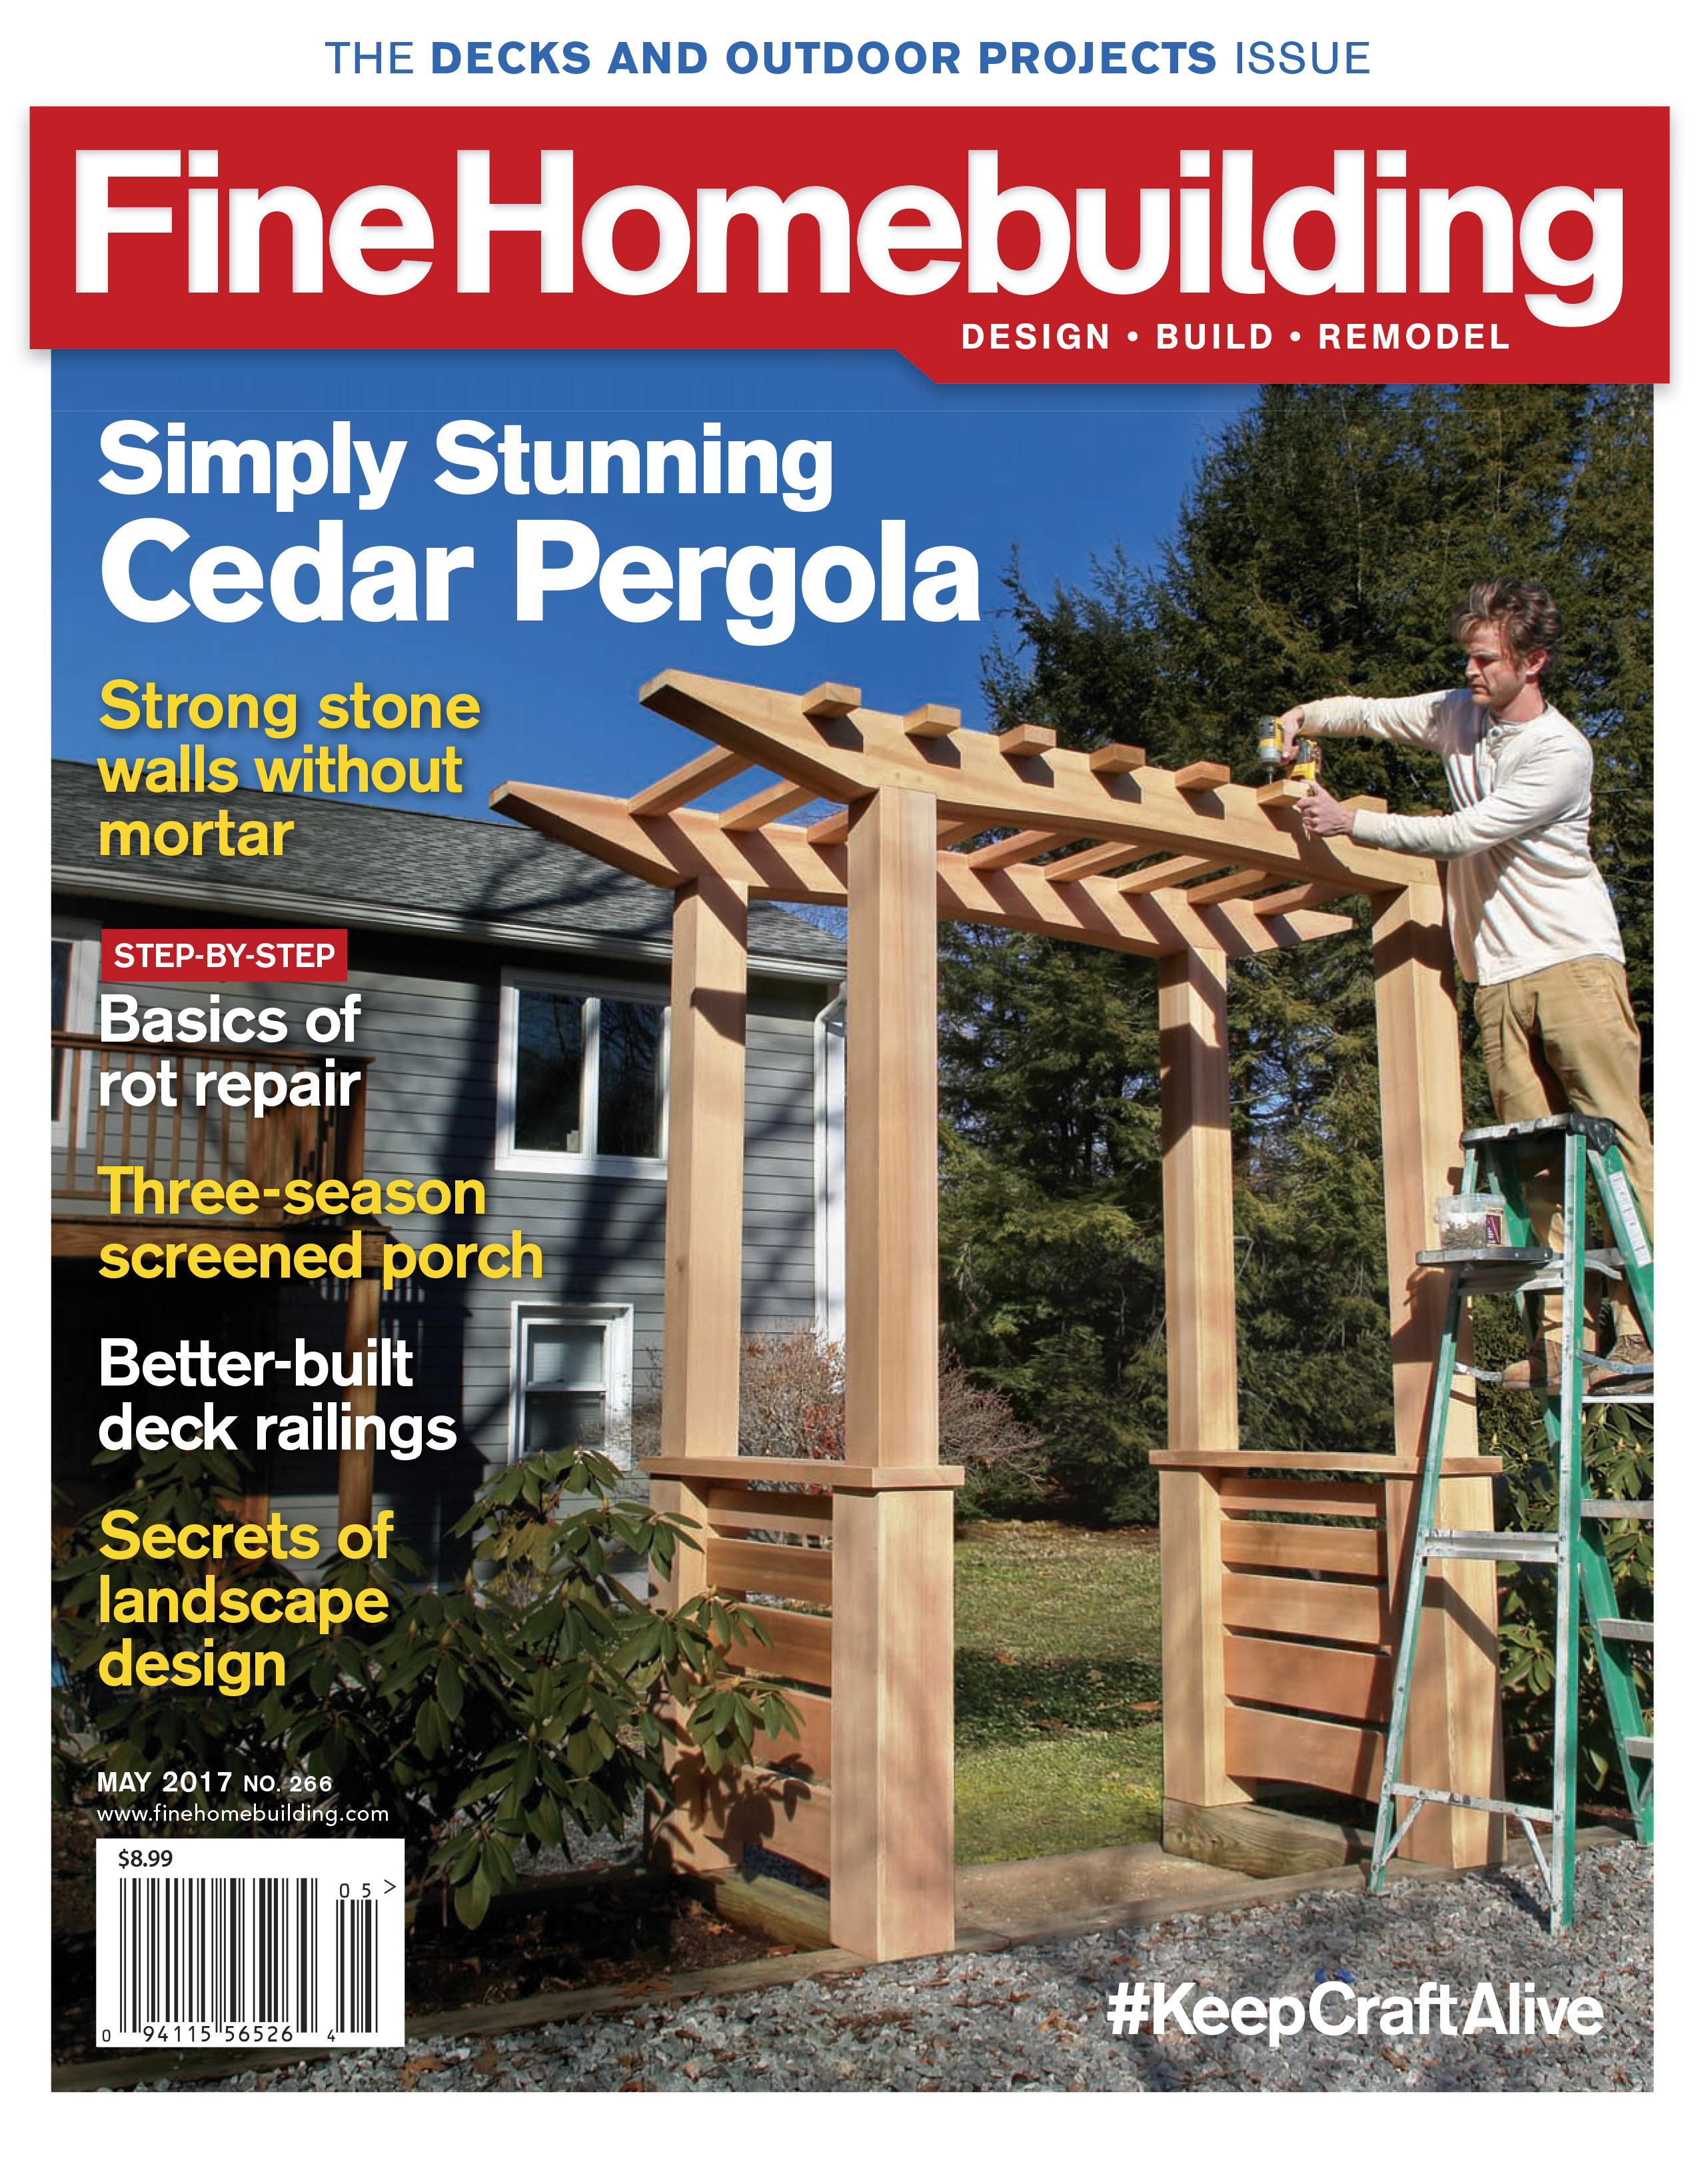 Balloon Frame Remodel Fine Homebuilding Wiring A House 4th Edition Completely Revised And Updated